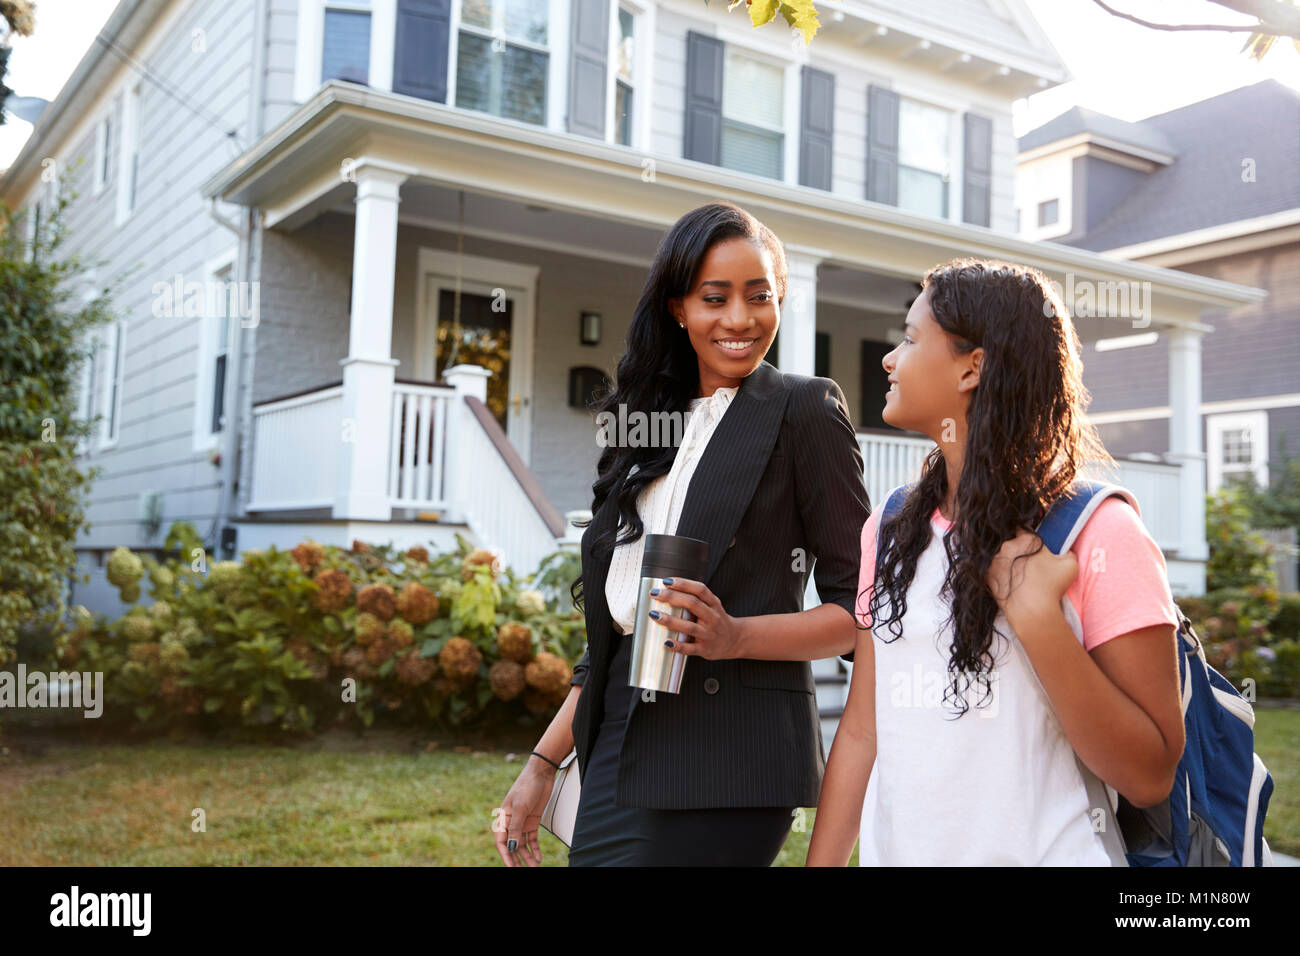 Businesswoman Mother Walking Daughter Back From School - Stock Image